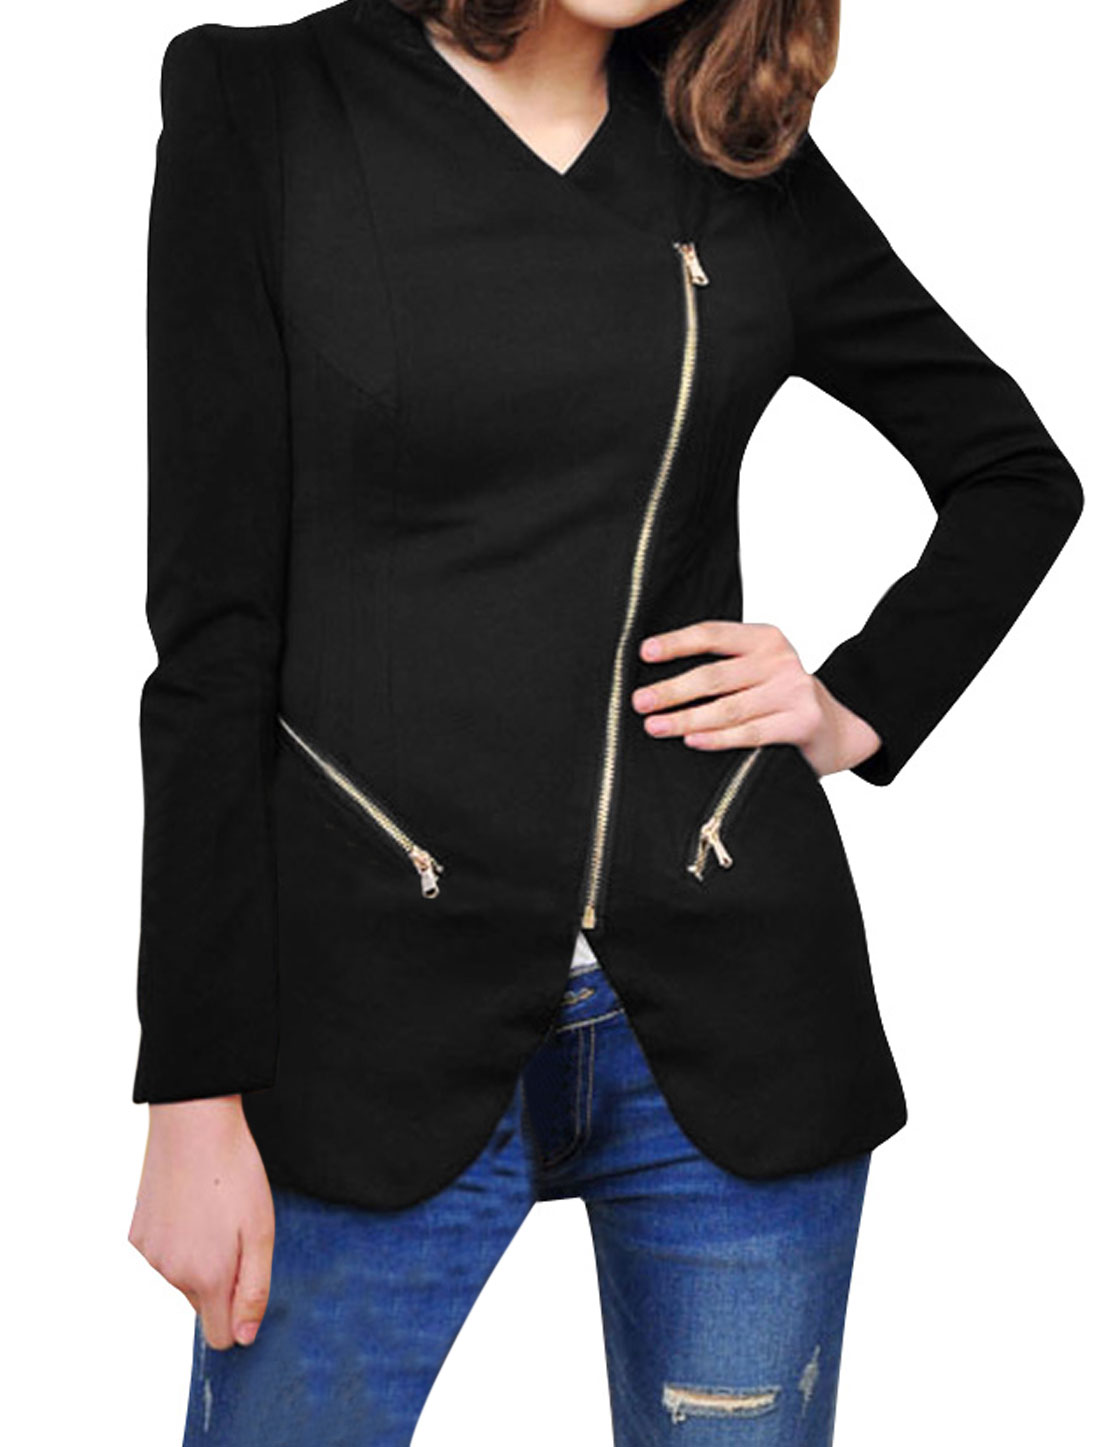 Pure Black Color Slant Zip-Up Closure Casual Blazer Jacket for Lady S